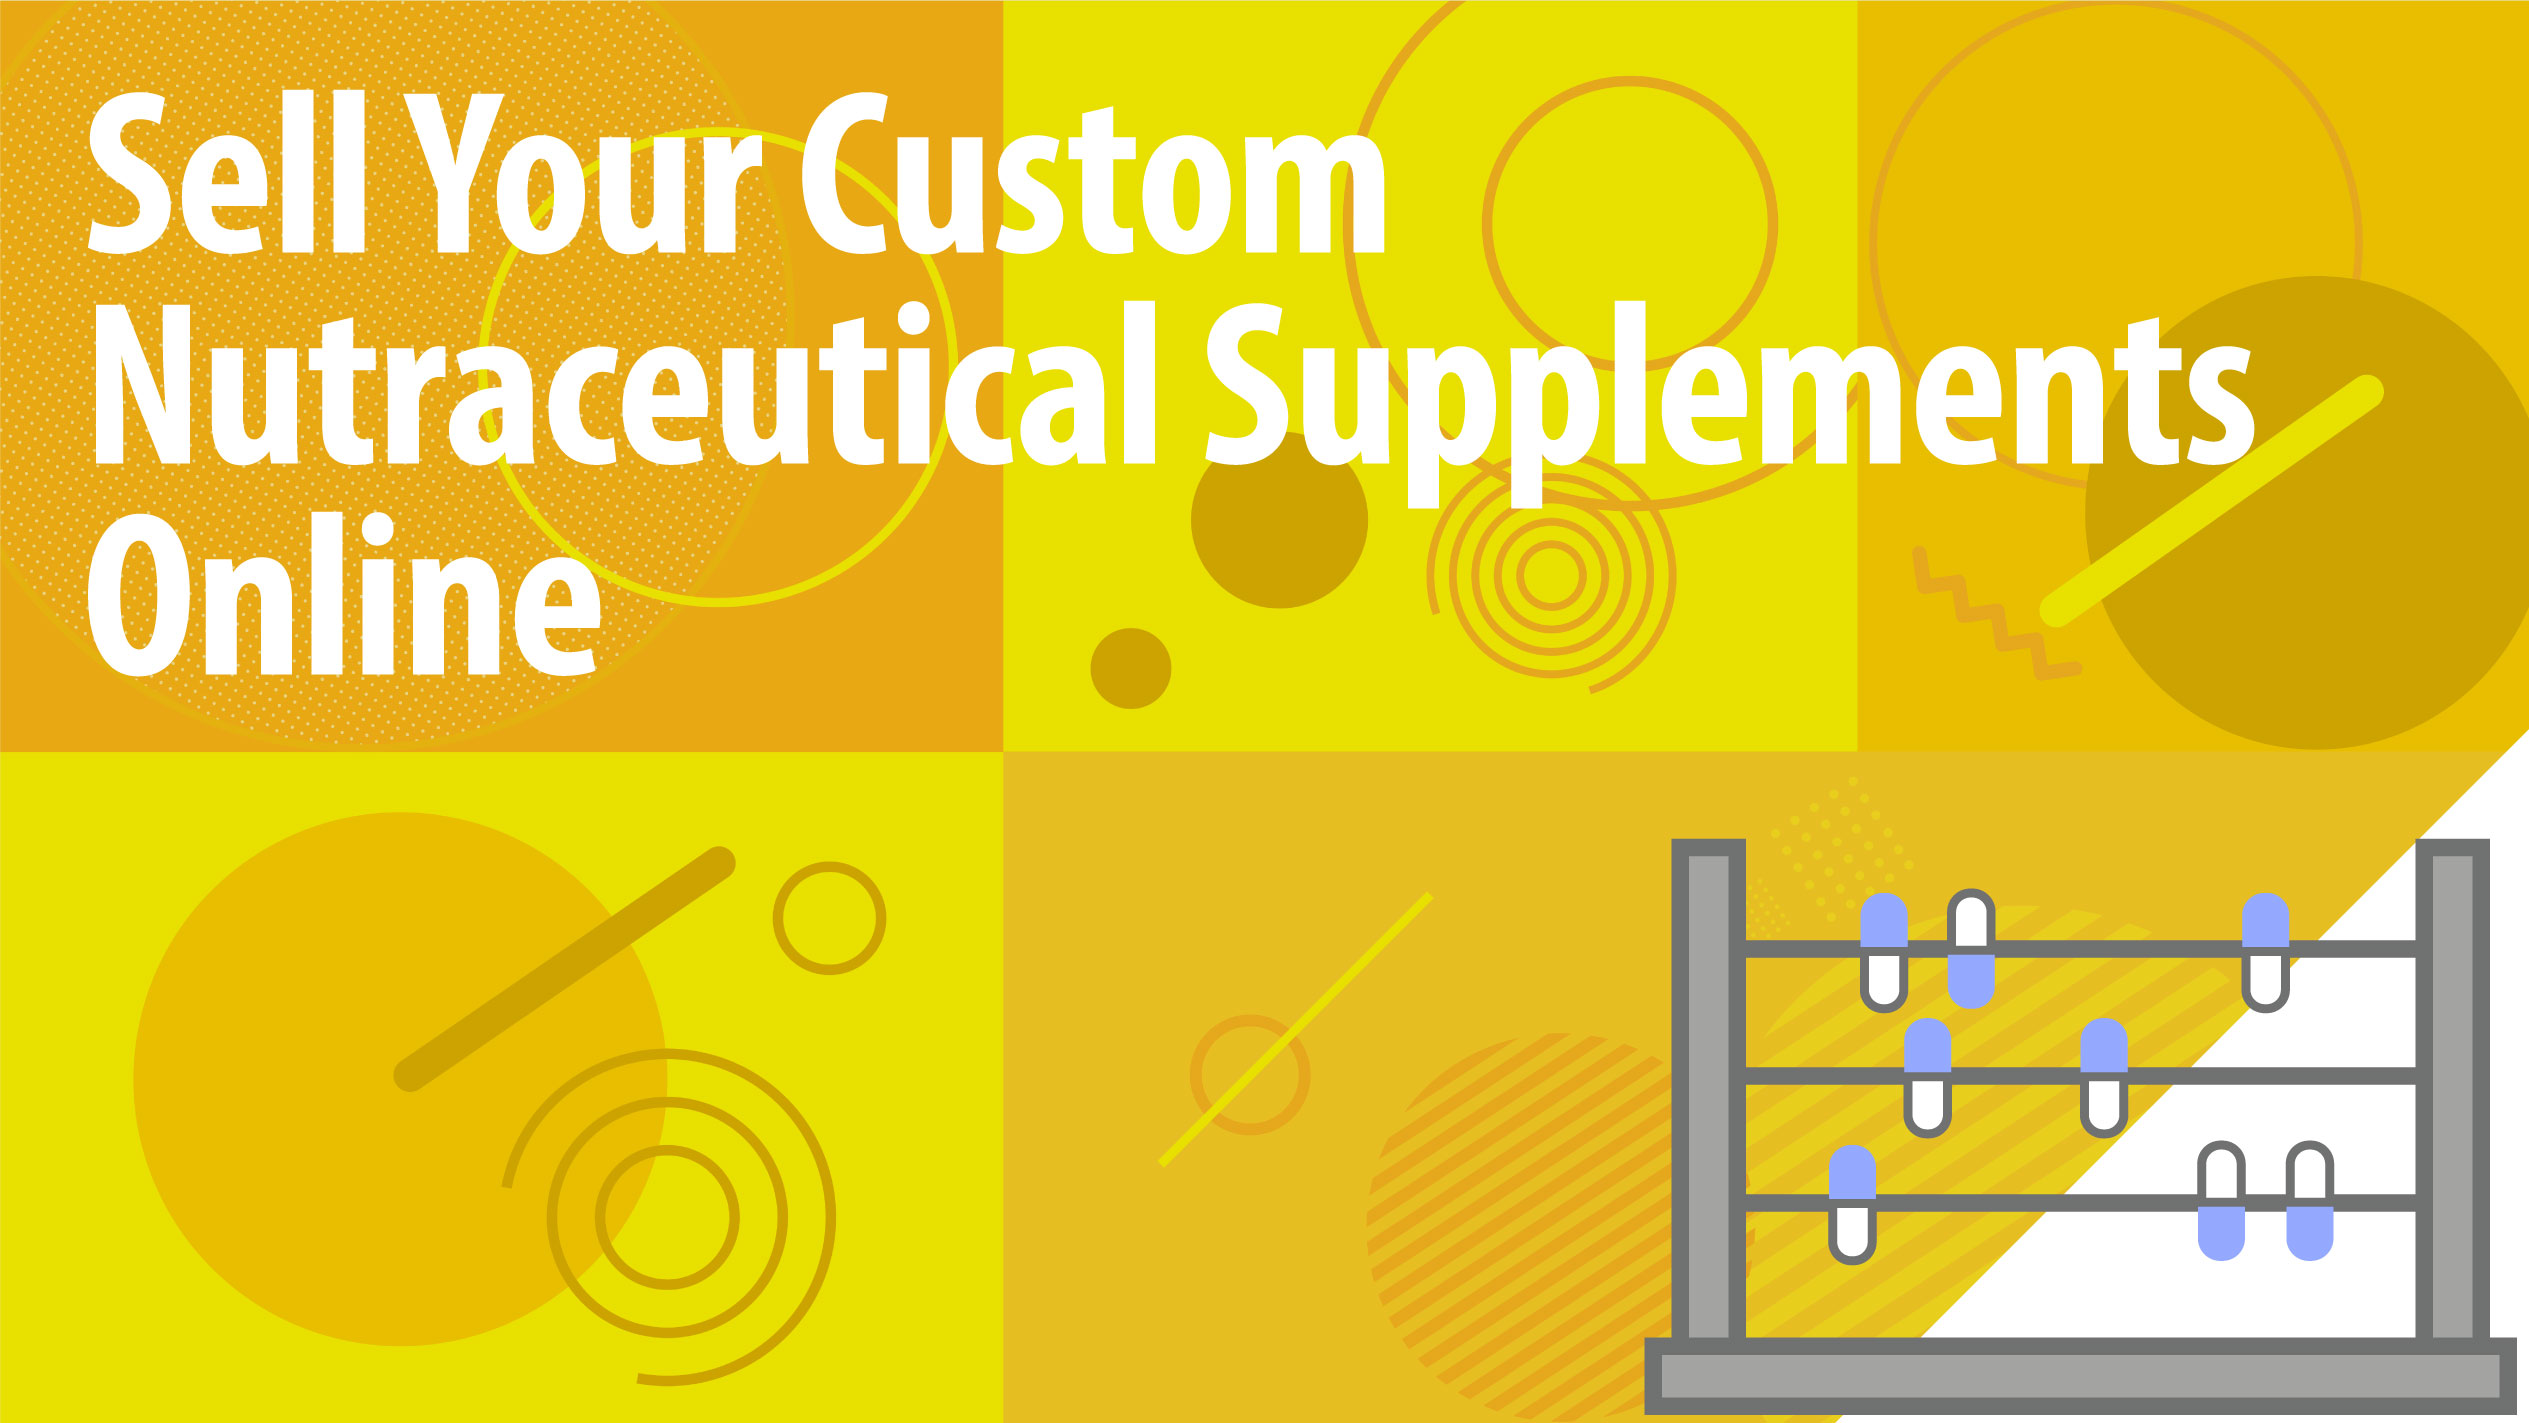 Sell Your Custom Nutraceutical Supplements Online